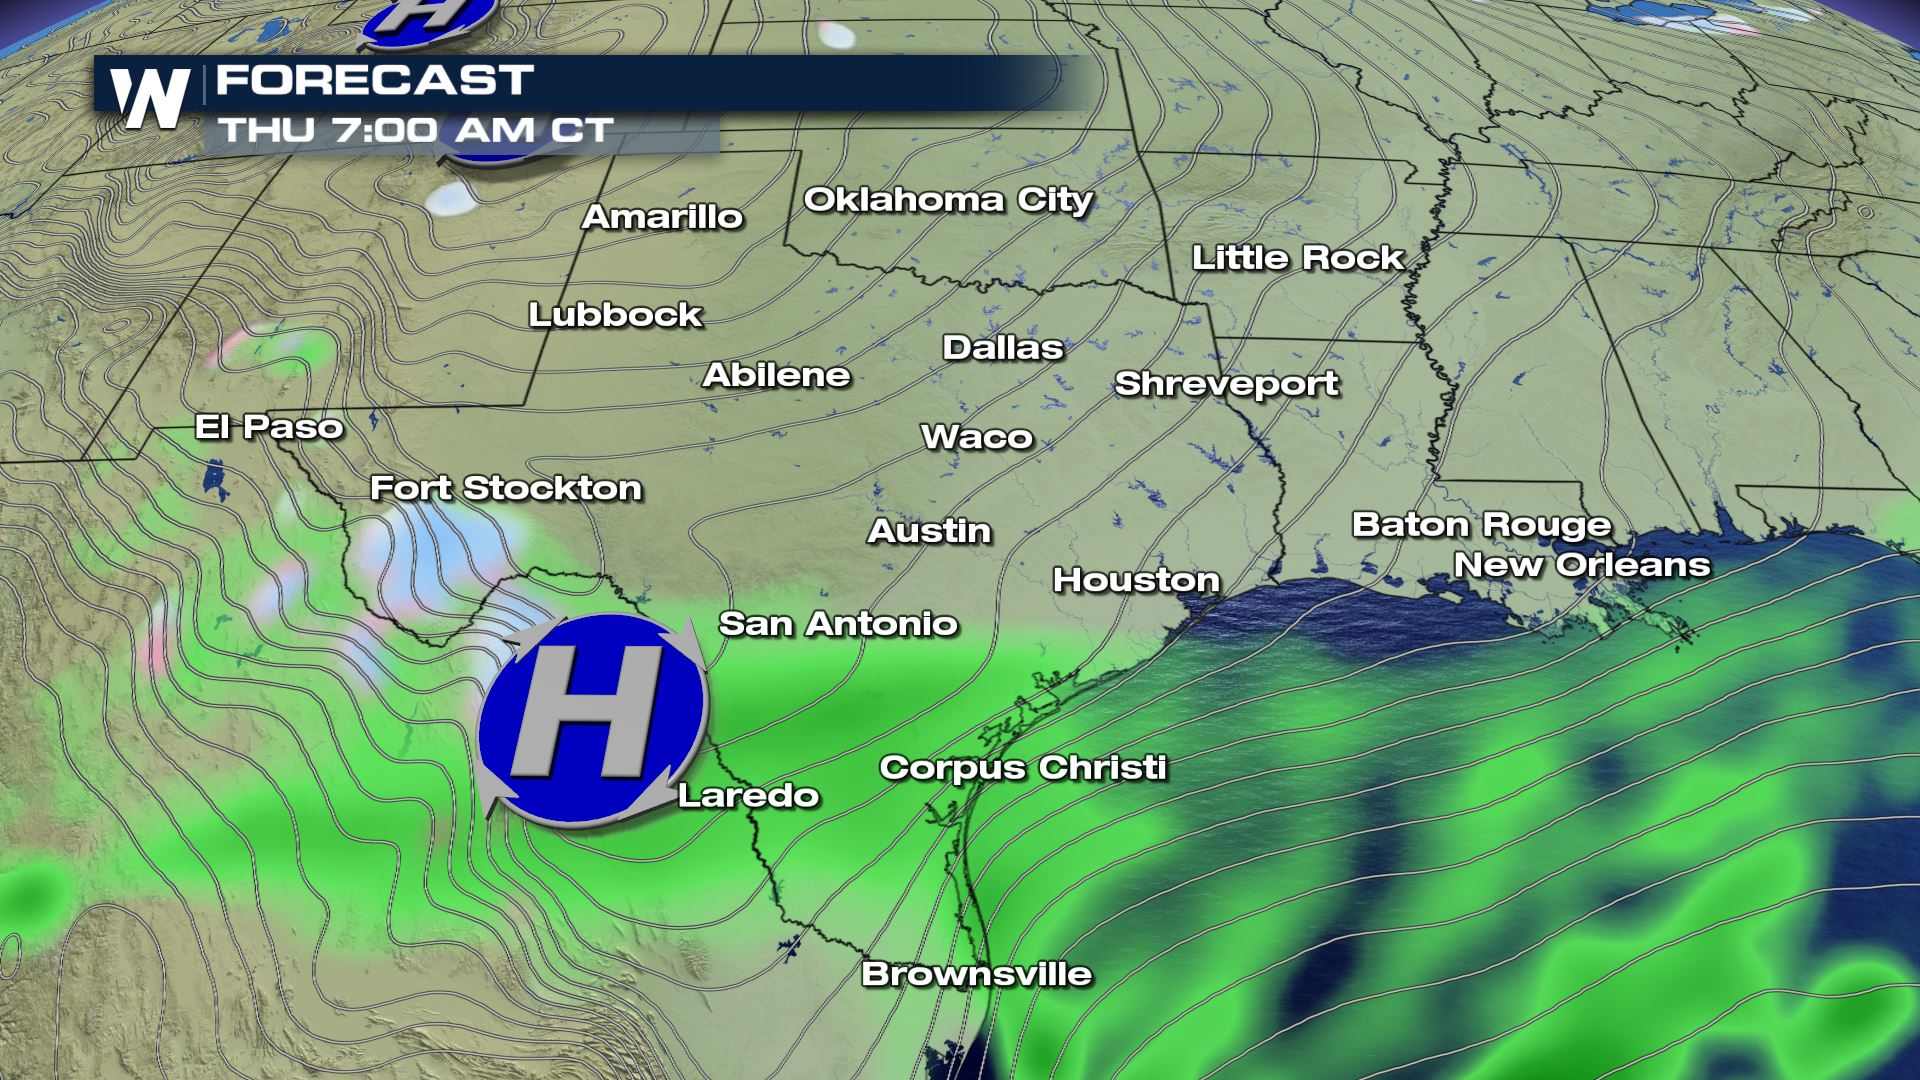 Increasing Snow Chances for   West Texas? - WeatherNation